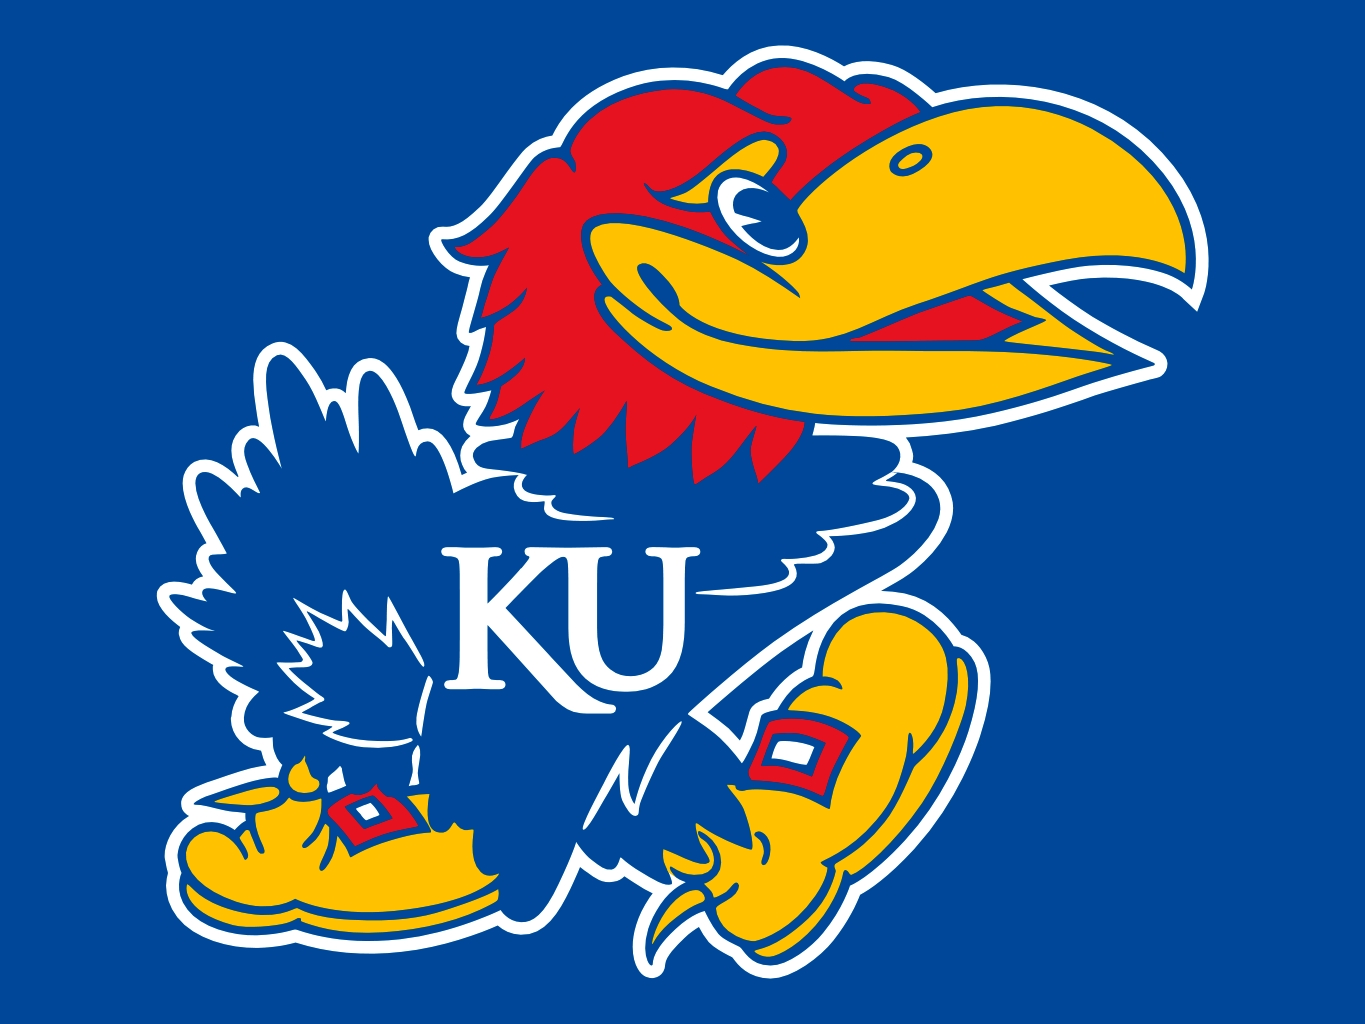 The KU Volleyball team takes on Nebraska tonight in Omaha in a national semifinal match.